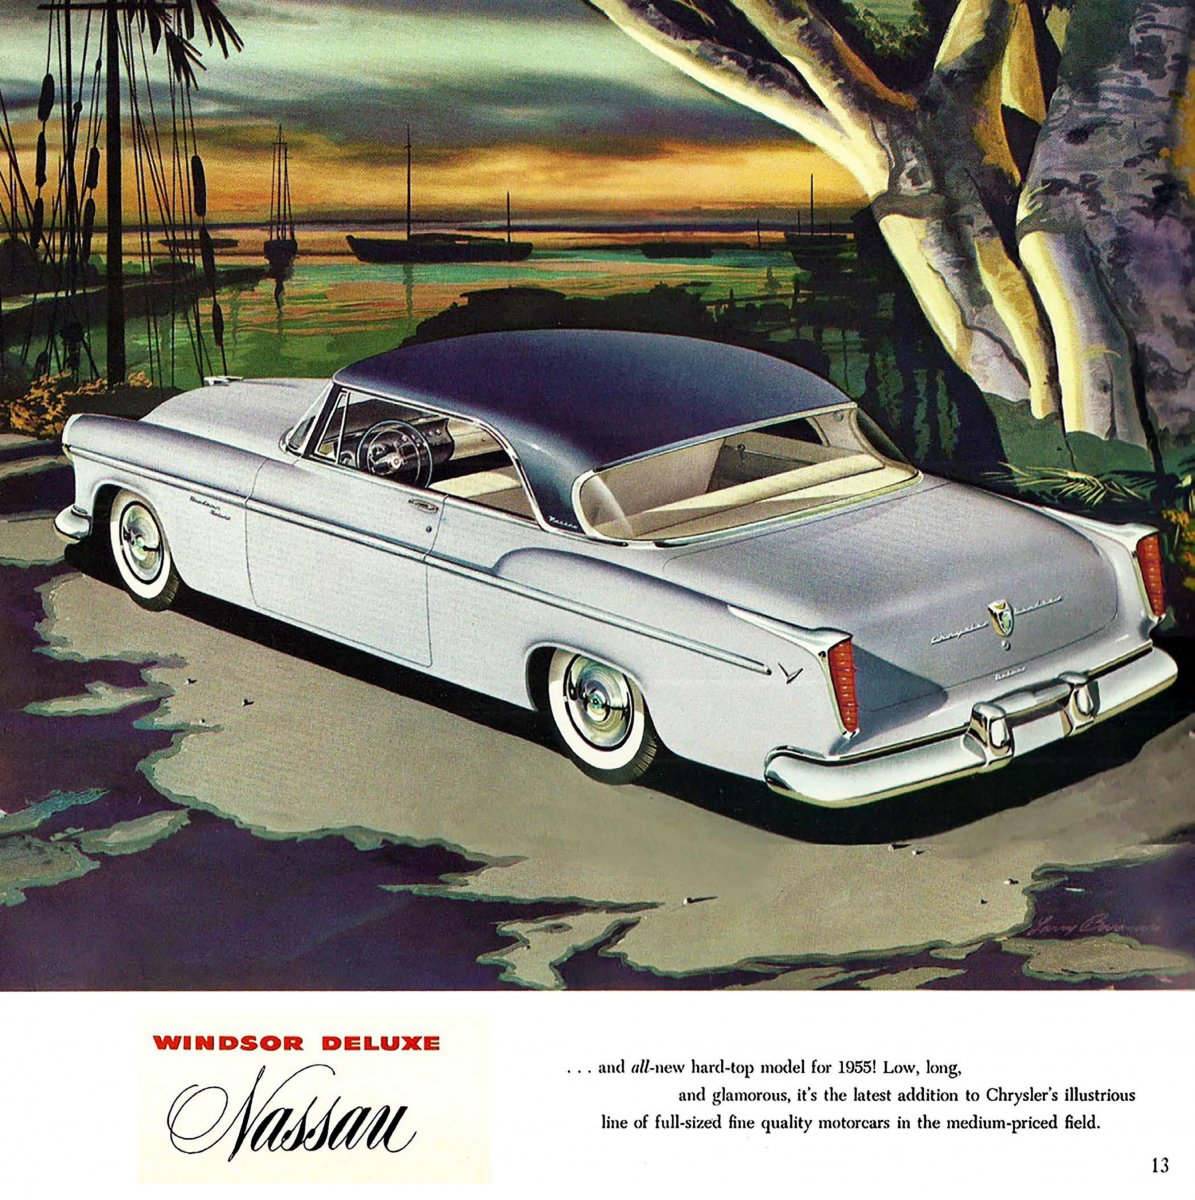 1955_Chrysler_Windsor_Brochure_1-16_13.jpg